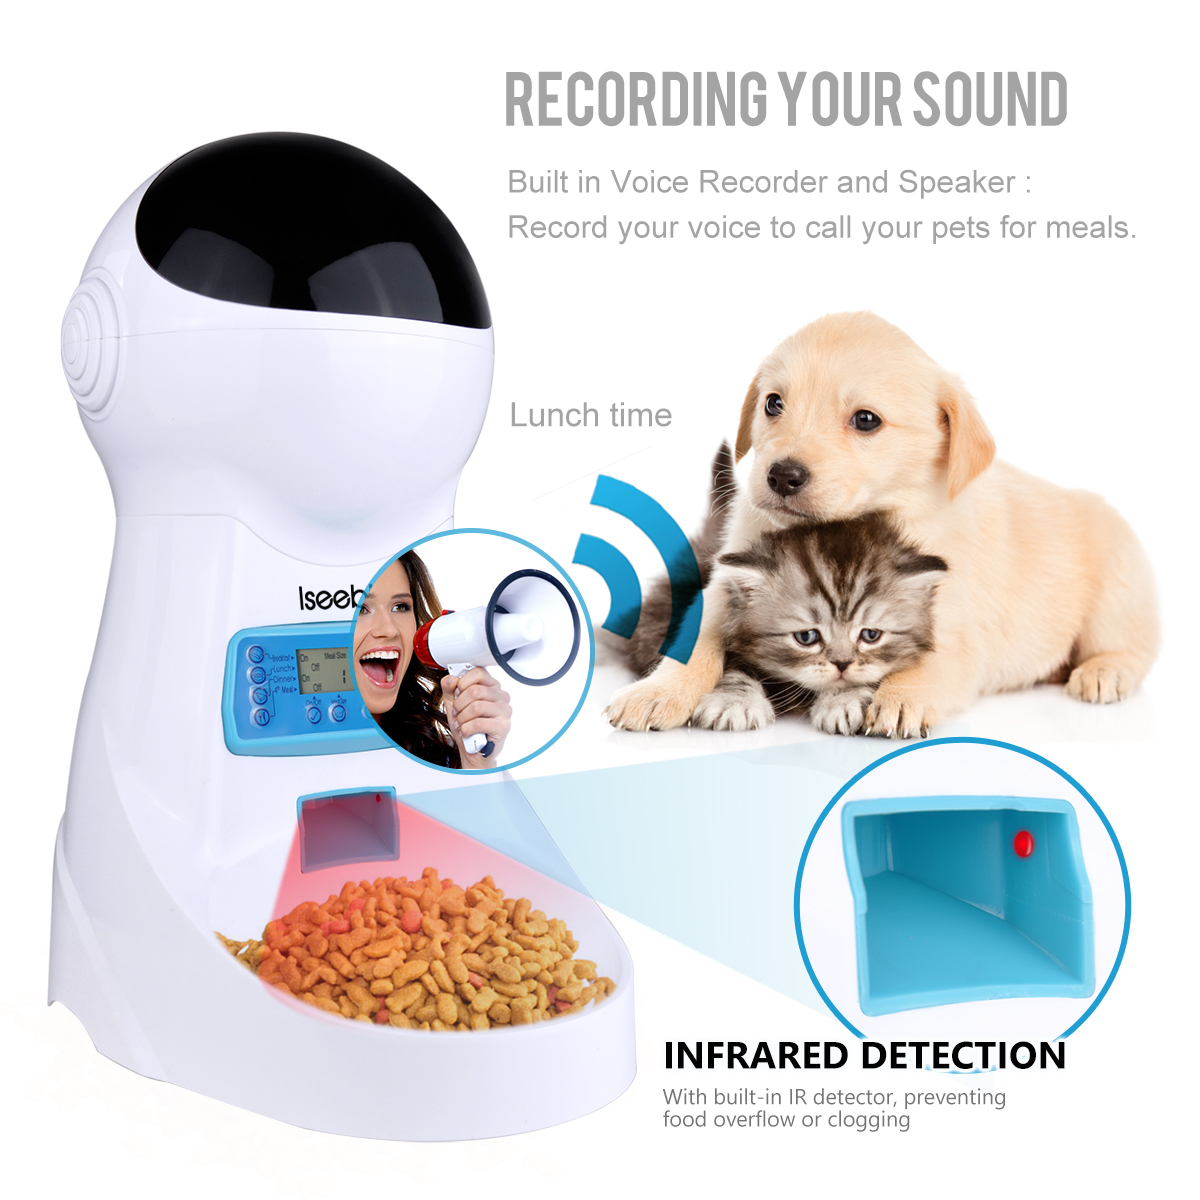 Canine - Wifi Automatic Pet Feeder 3L Pet Food Dispenser Feeder Medium and Large Cat Dog 4 Meal Voice Recorder and Timer